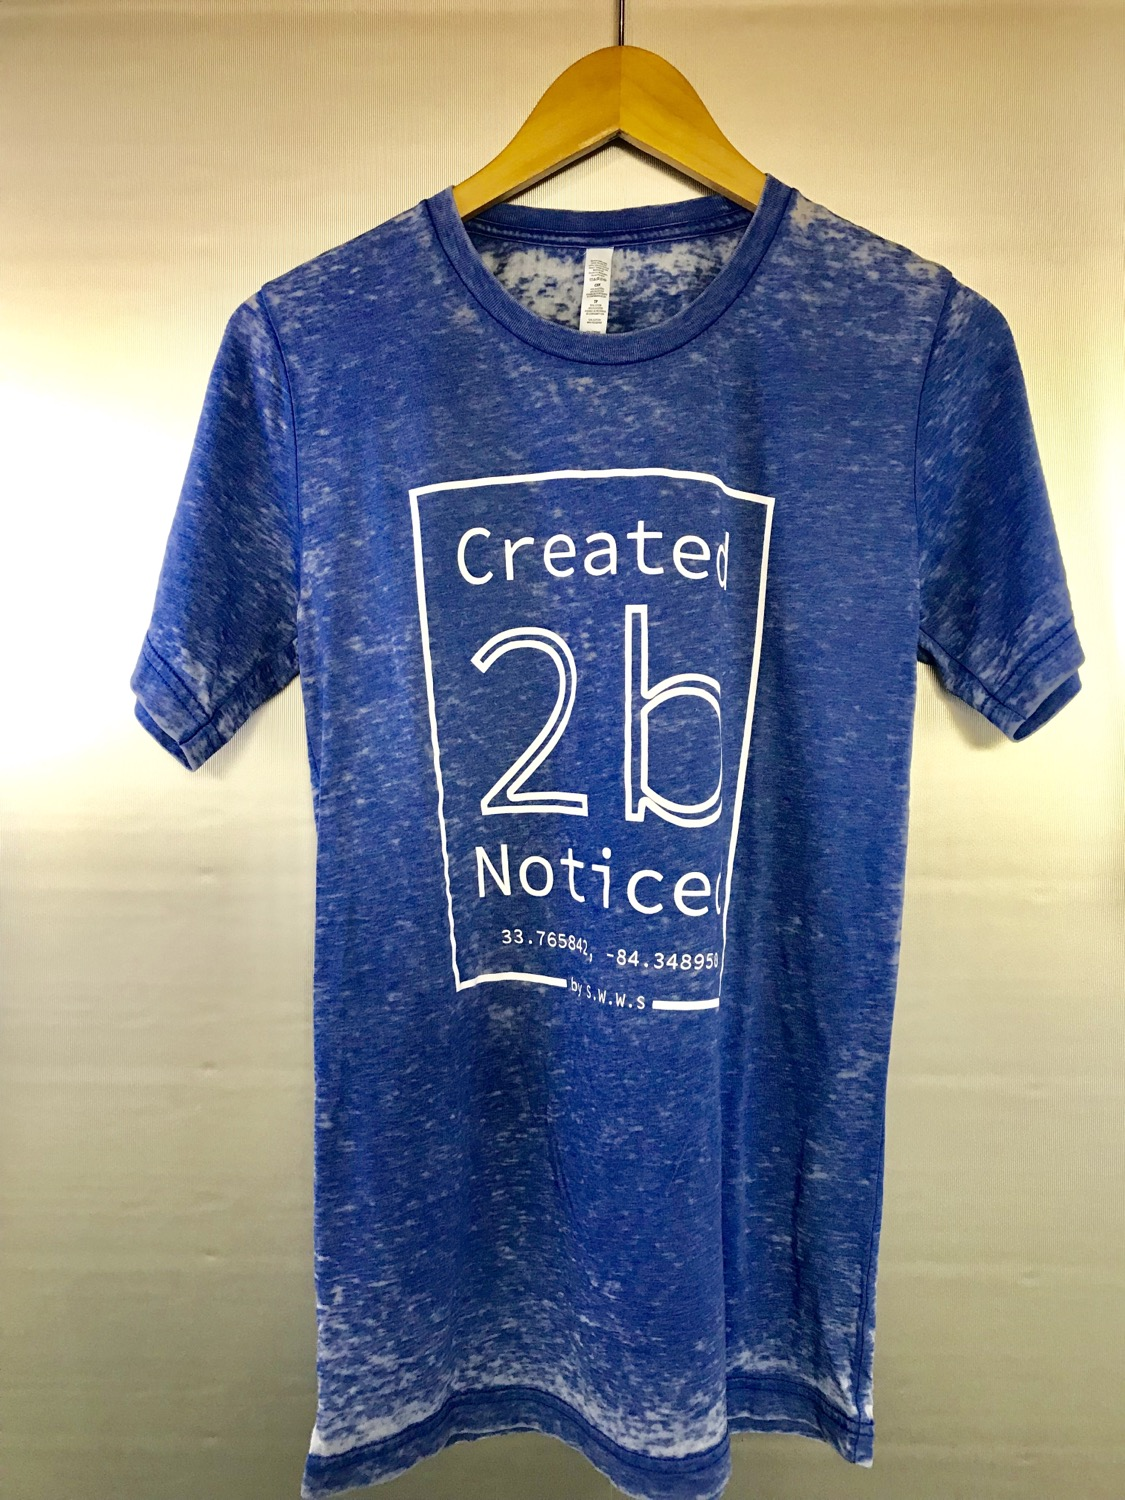 Created To Be Noticed (c2bn) - Element - Acid Wash Blue